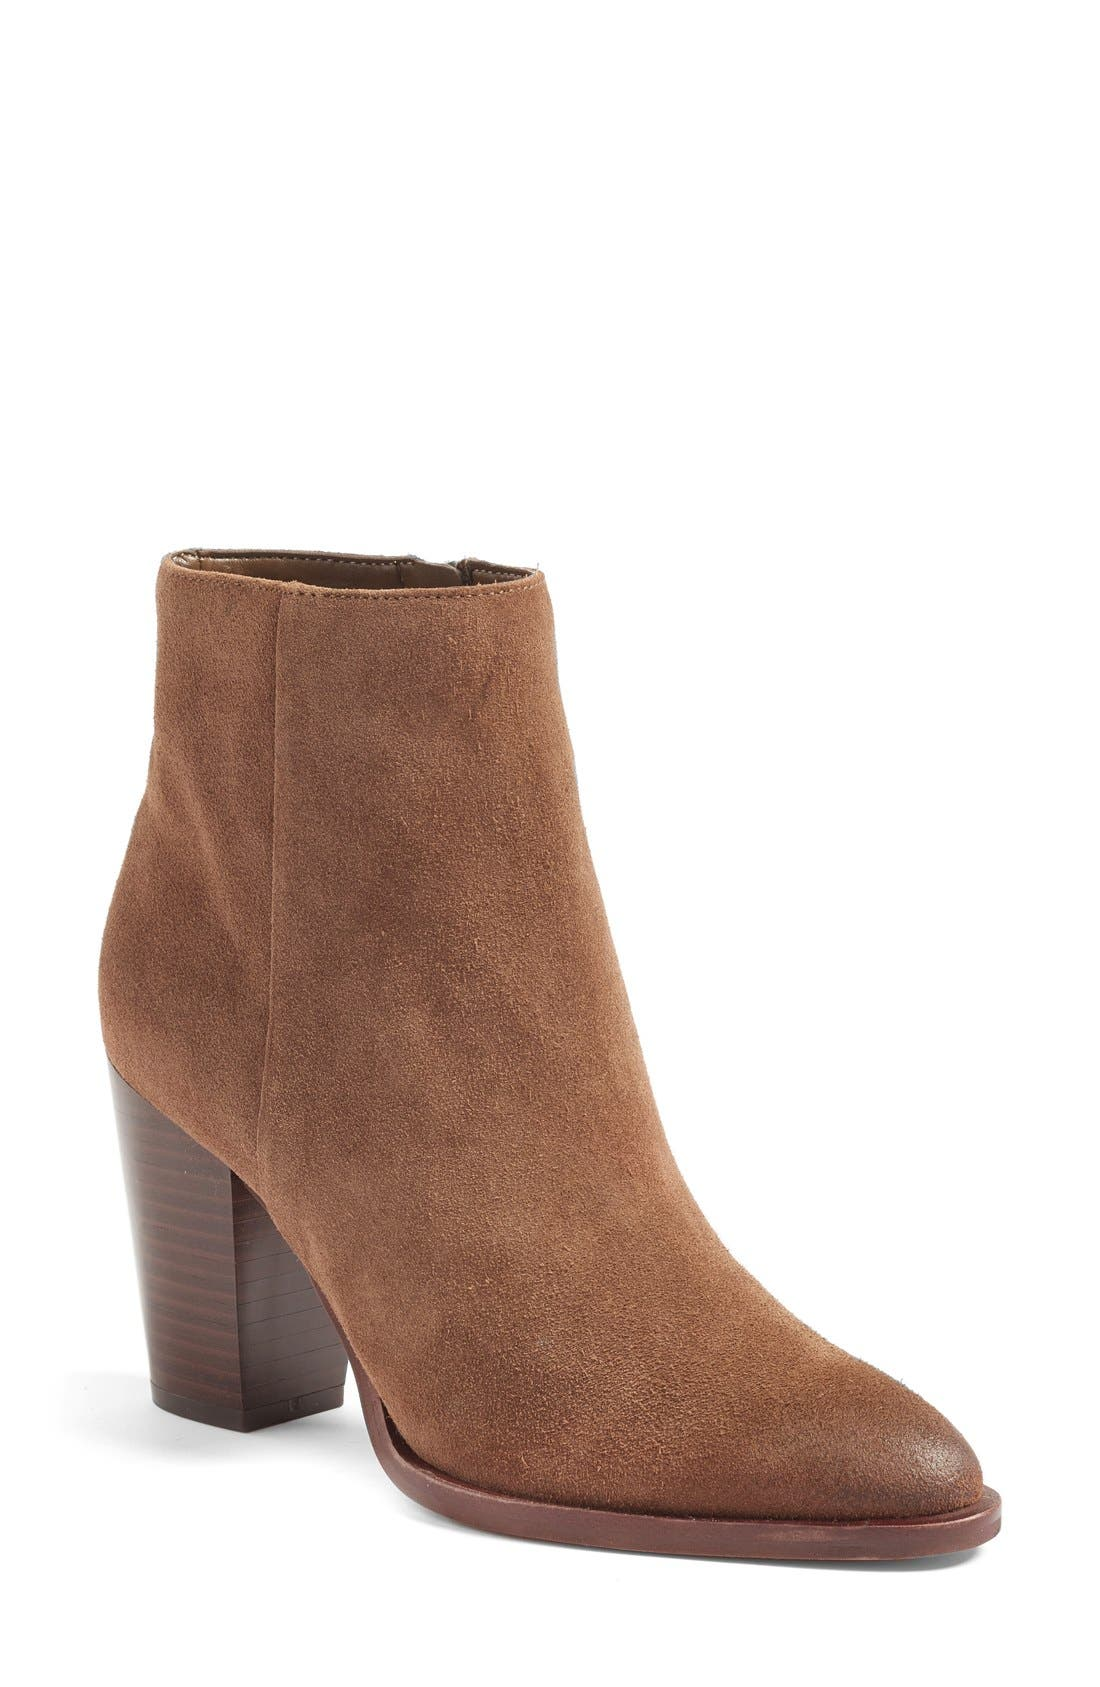 Alternate Image 1 Selected - Sam Edelman 'Blake' Bootie (Women)